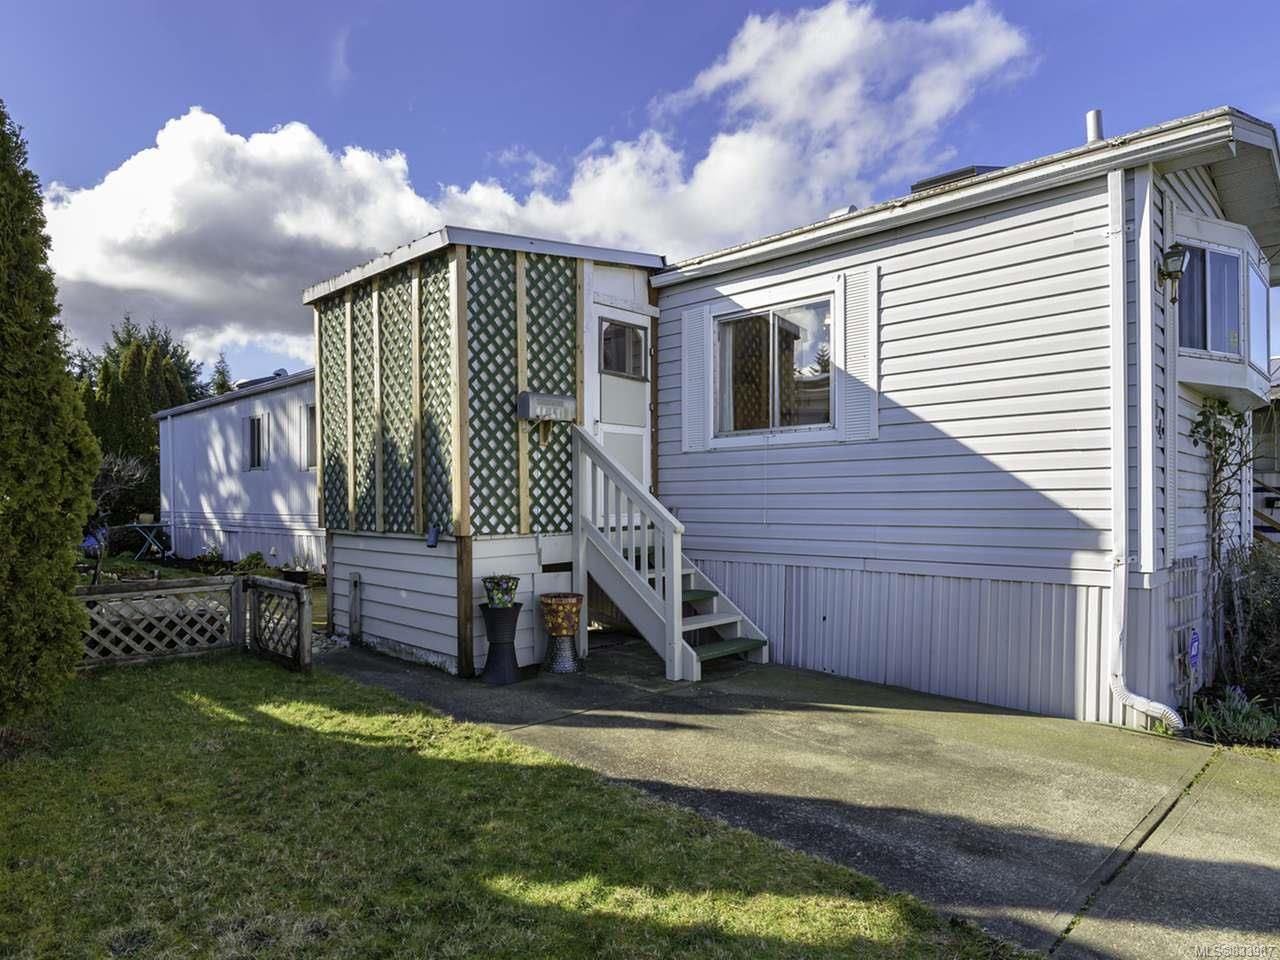 Photo 4: Photos: 64 390 Cowichan Ave in COURTENAY: CV Courtenay East Manufactured Home for sale (Comox Valley)  : MLS®# 833987